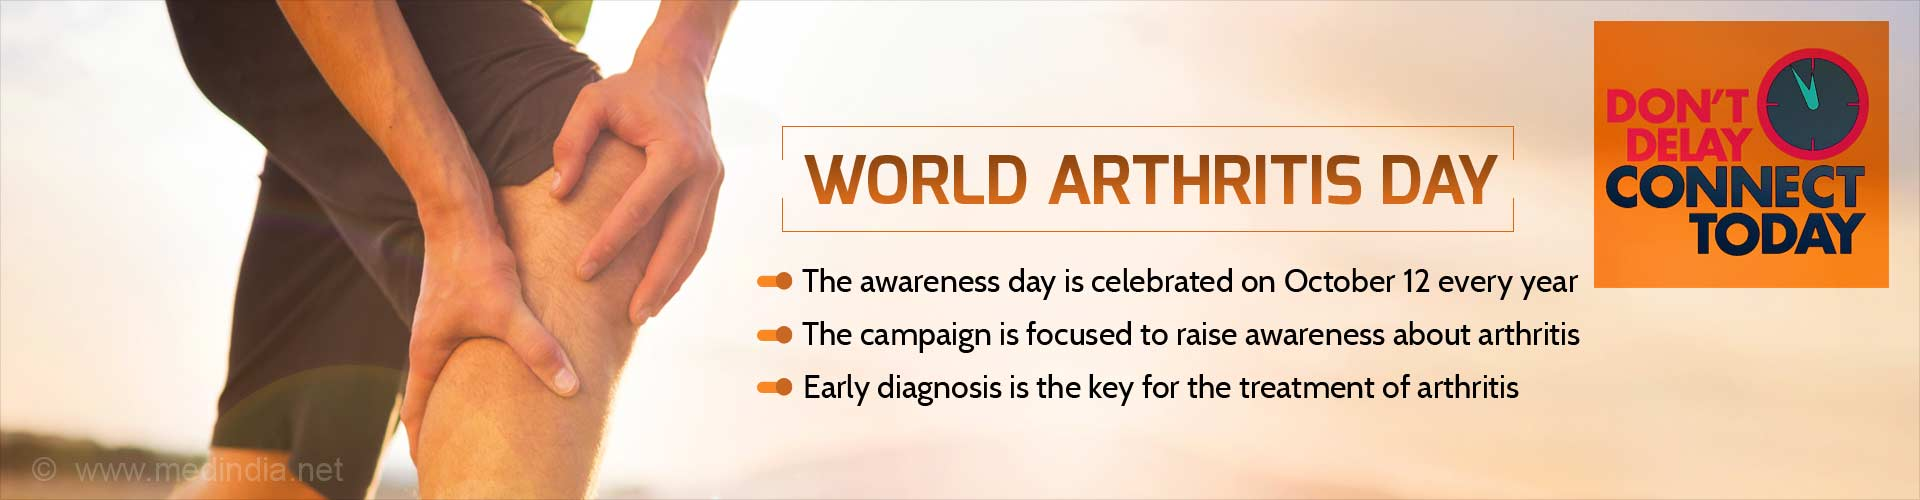 World Arthritis Day Dont Delay Stay Connected